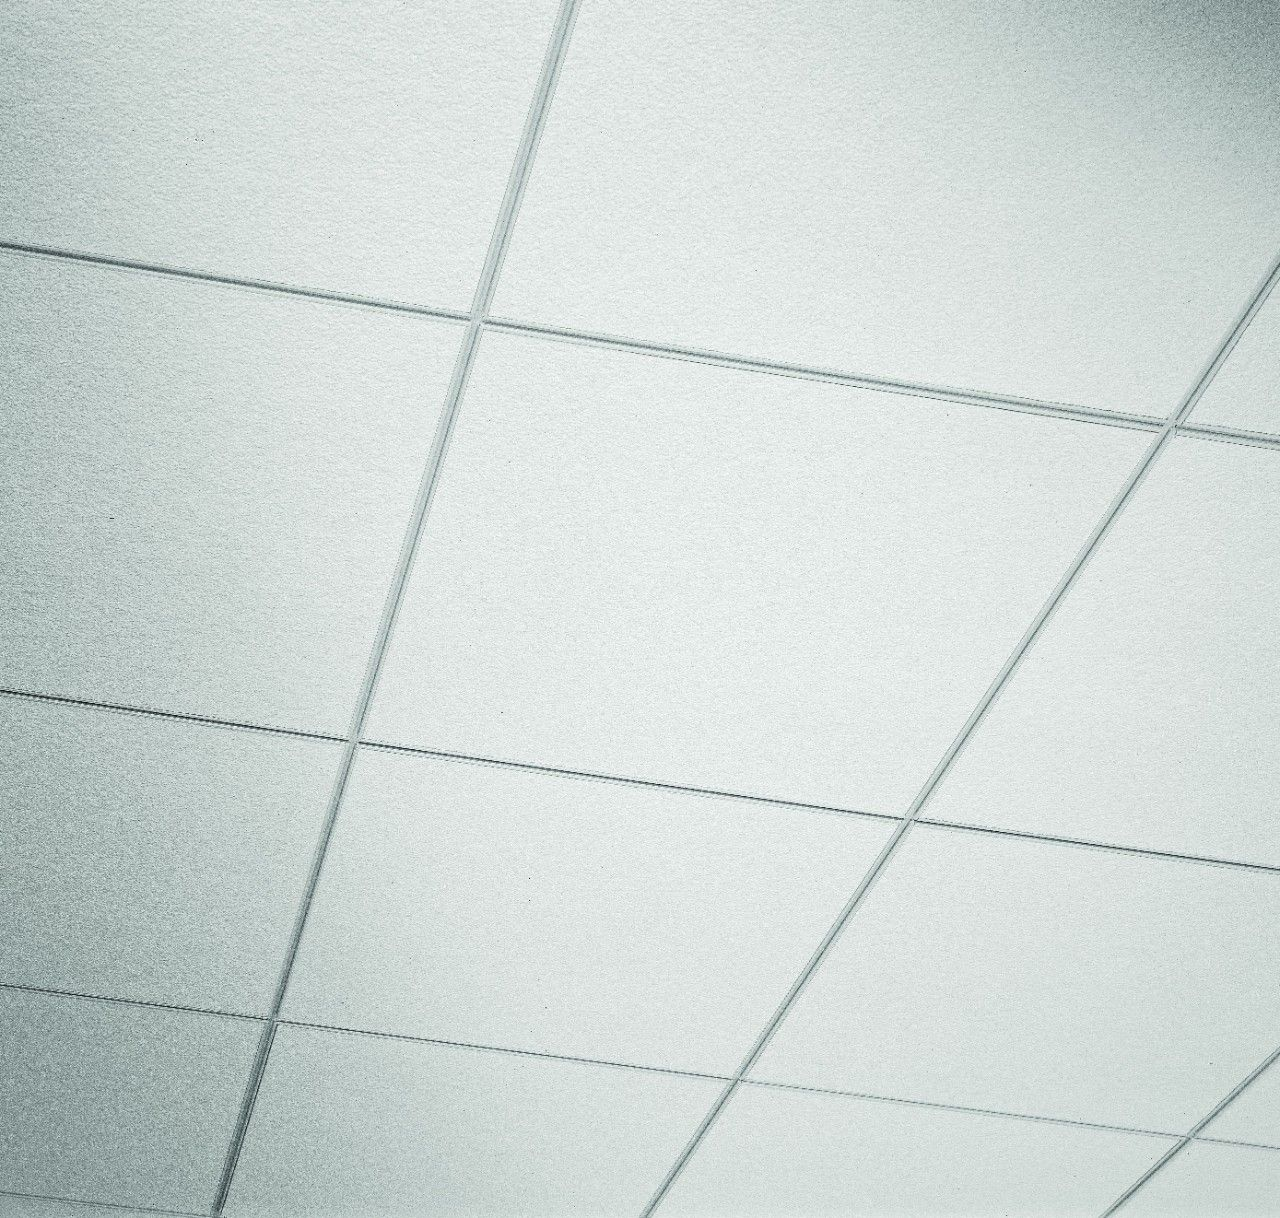 acoustical ceilings awards ceiling tiles armstrong htm picture vision acoustic tile academy